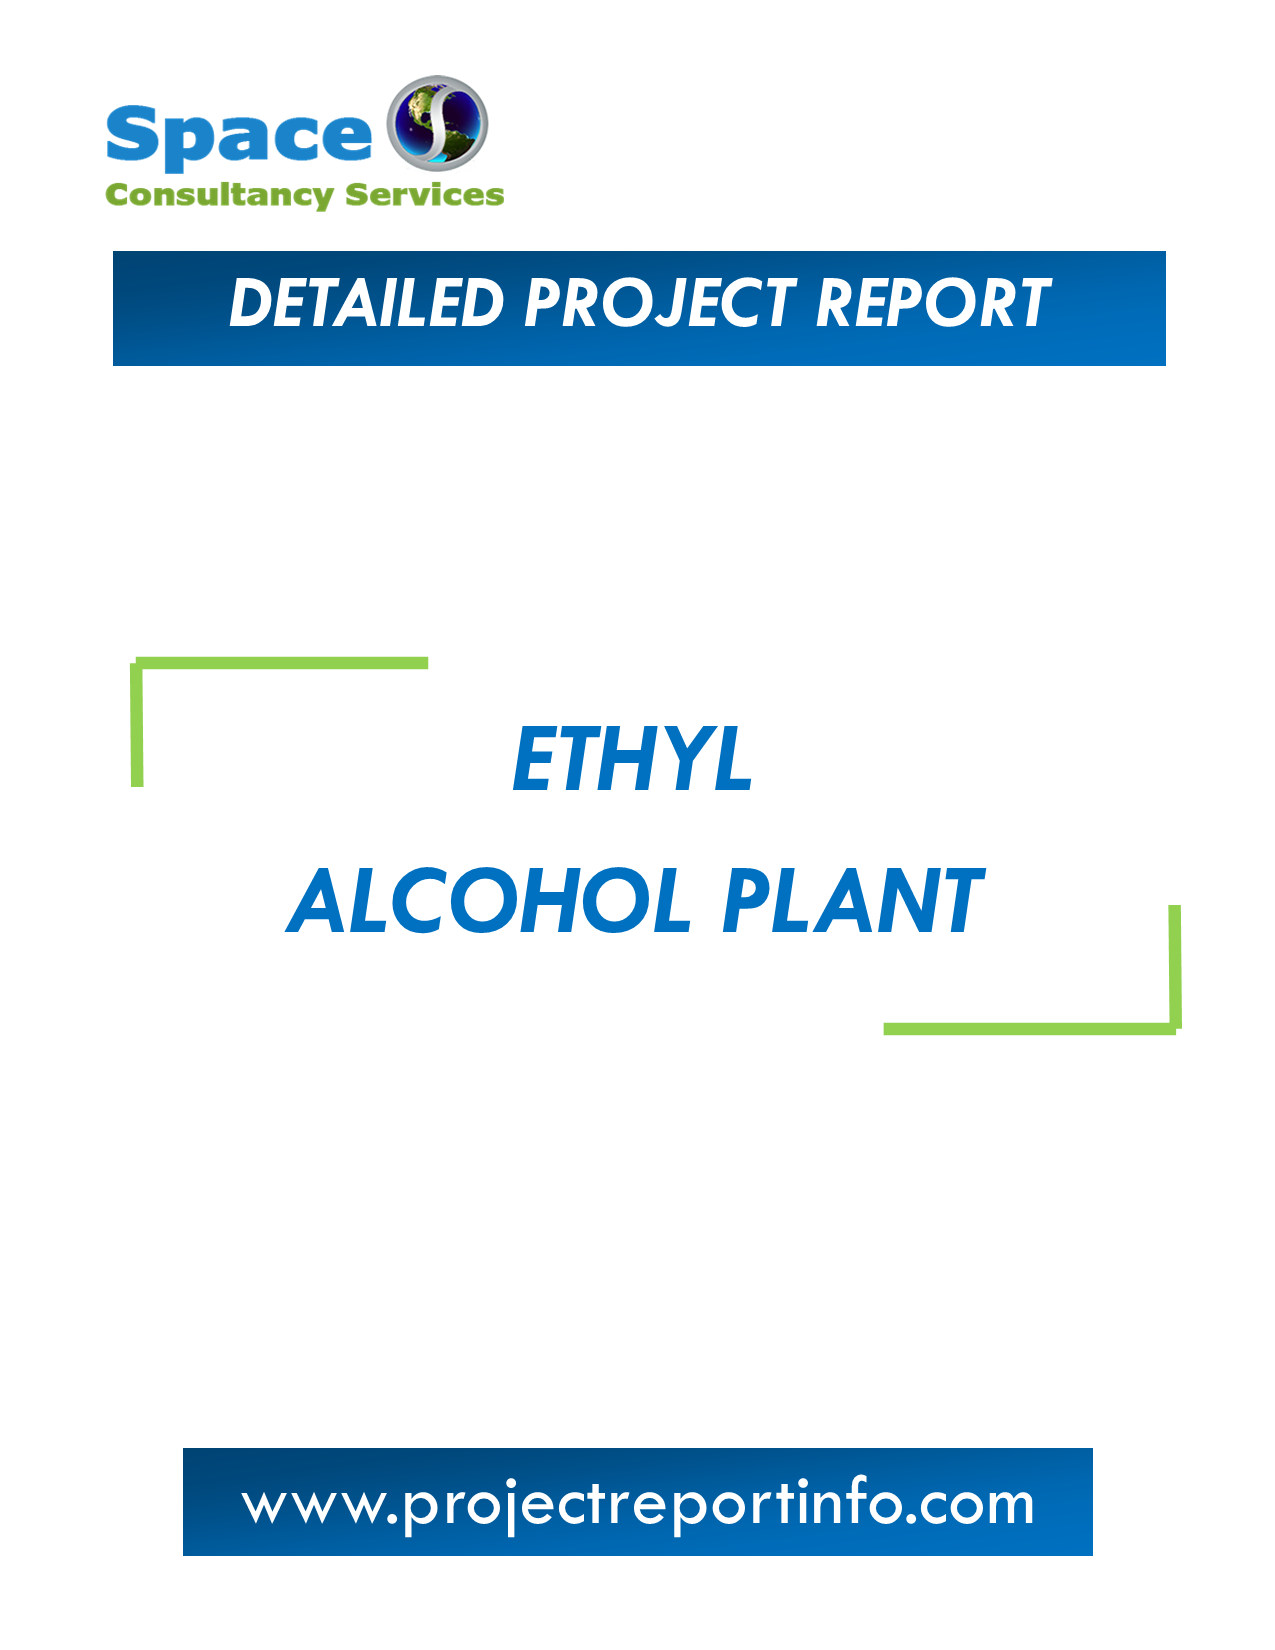 Project Report on Ethyl Alcohol Plant